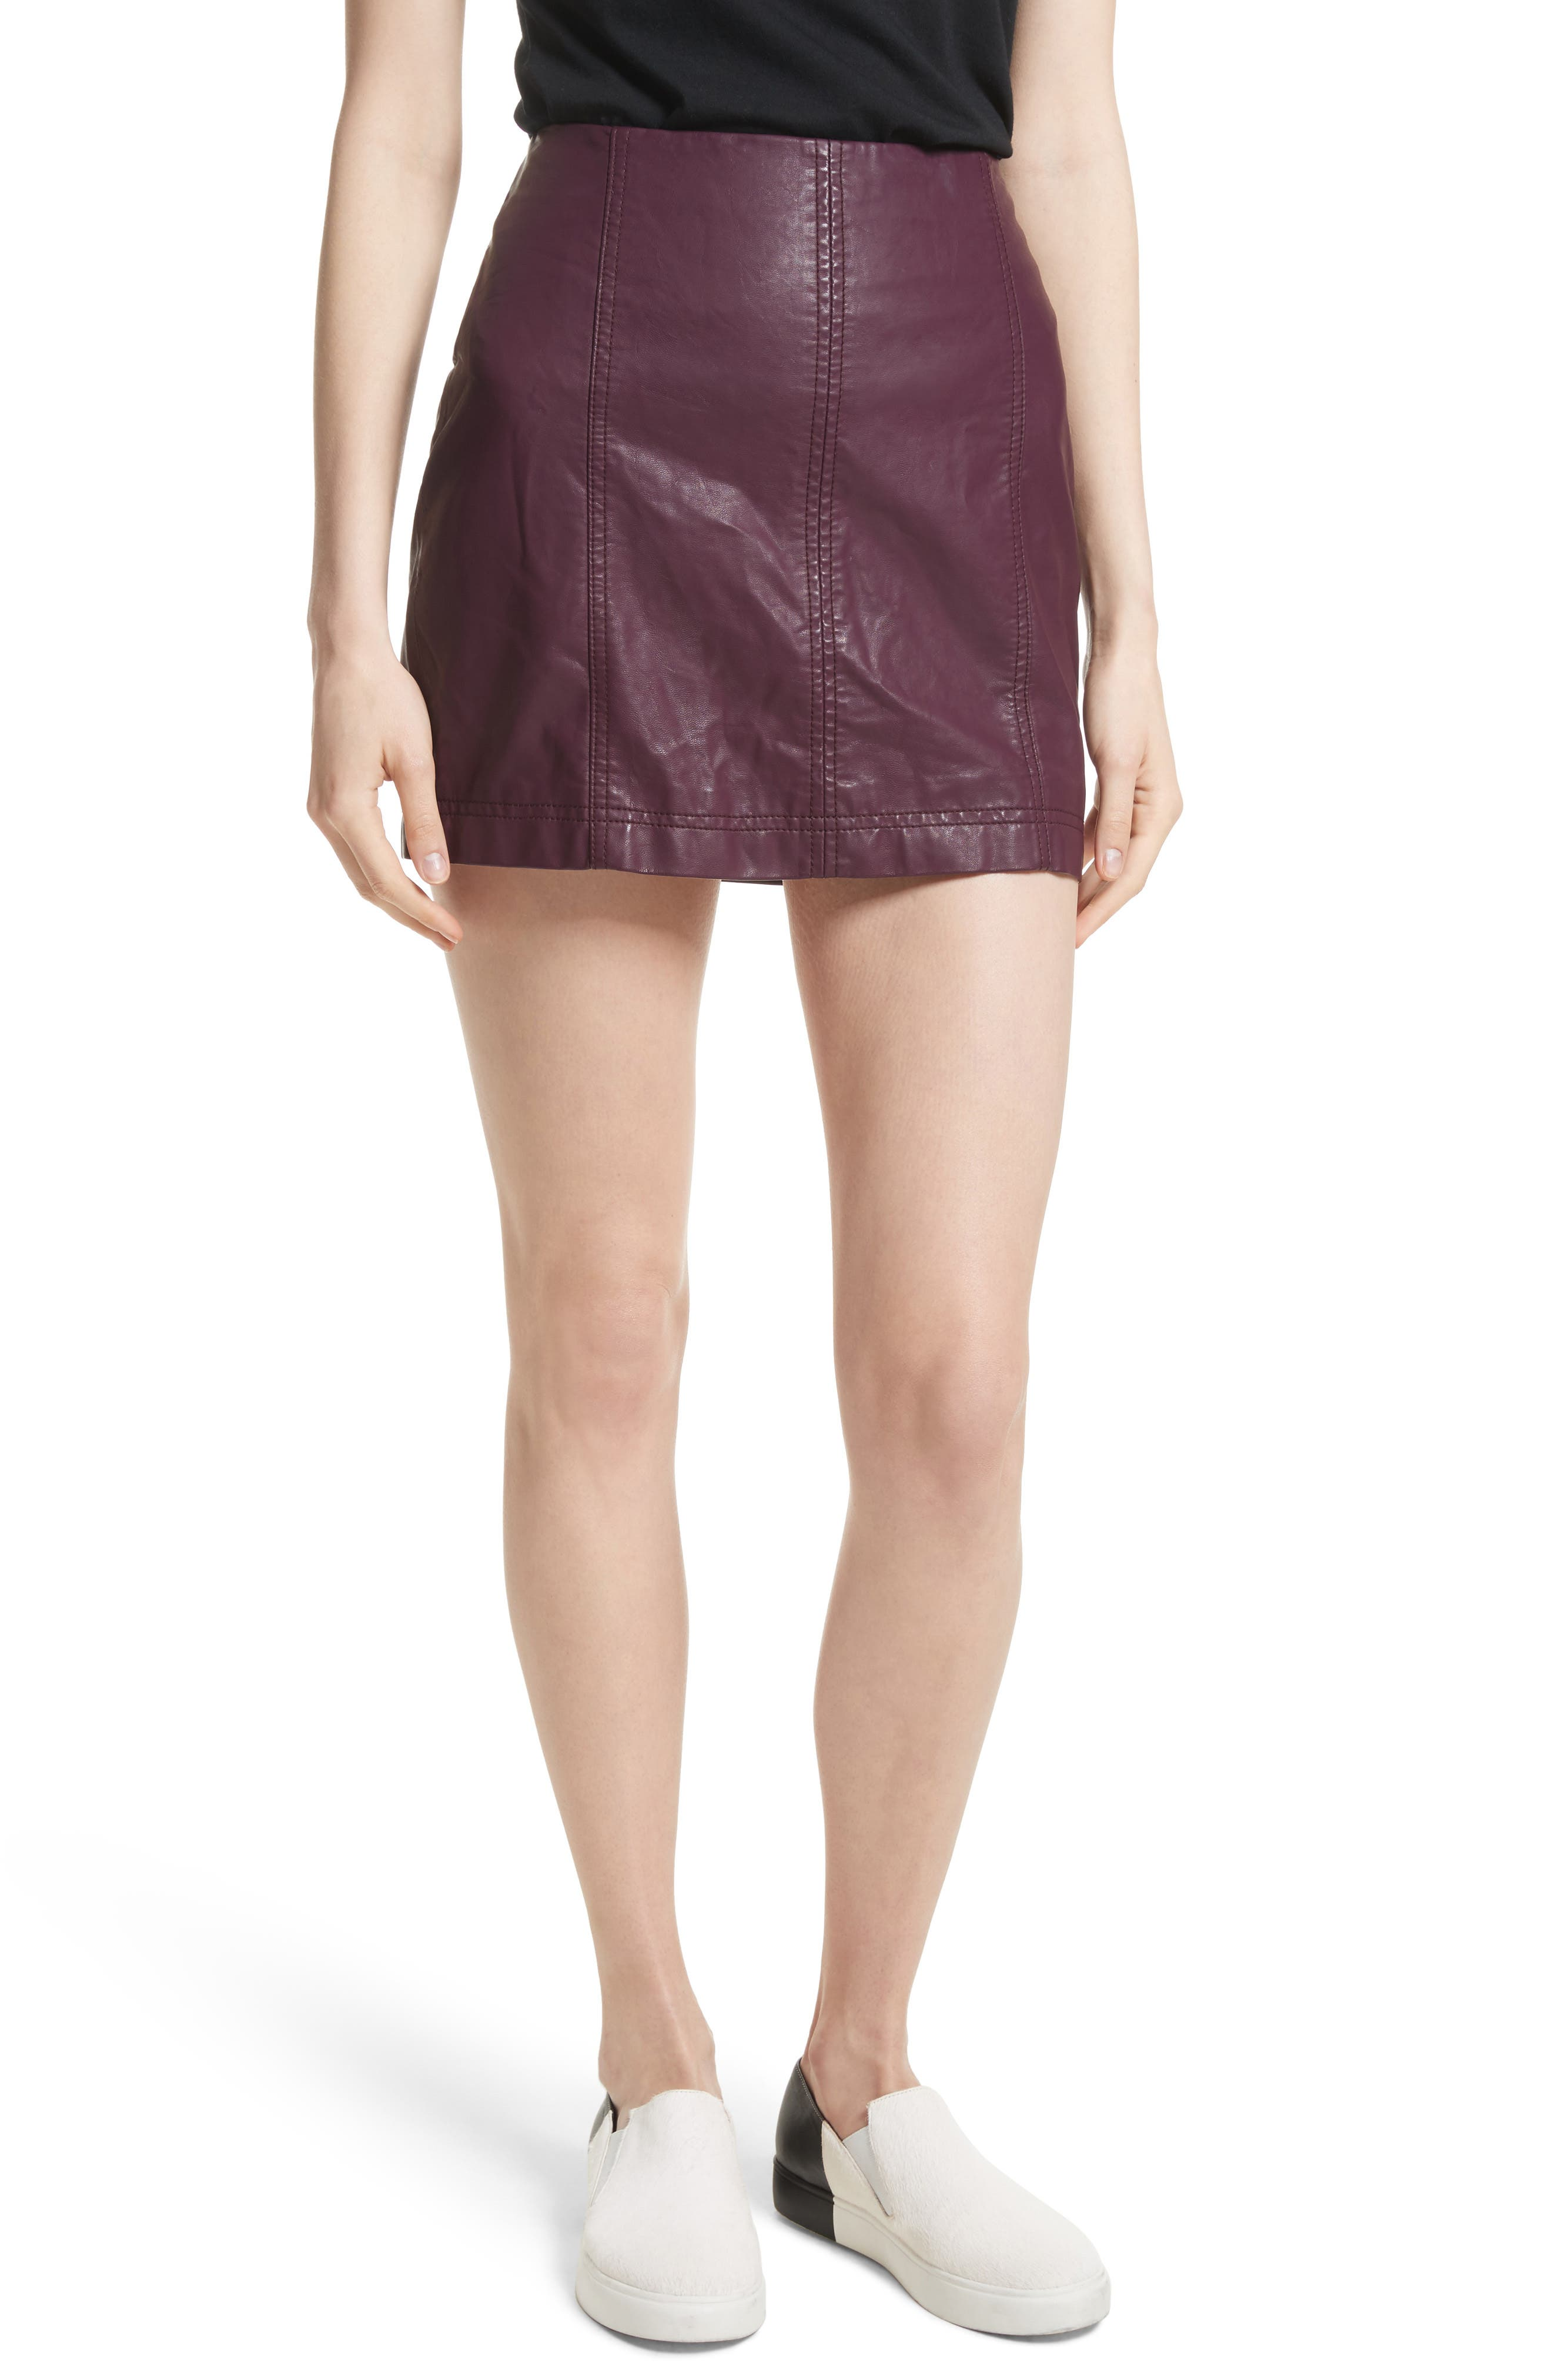 Free People Modern Femme Faux Leather Miniskirt